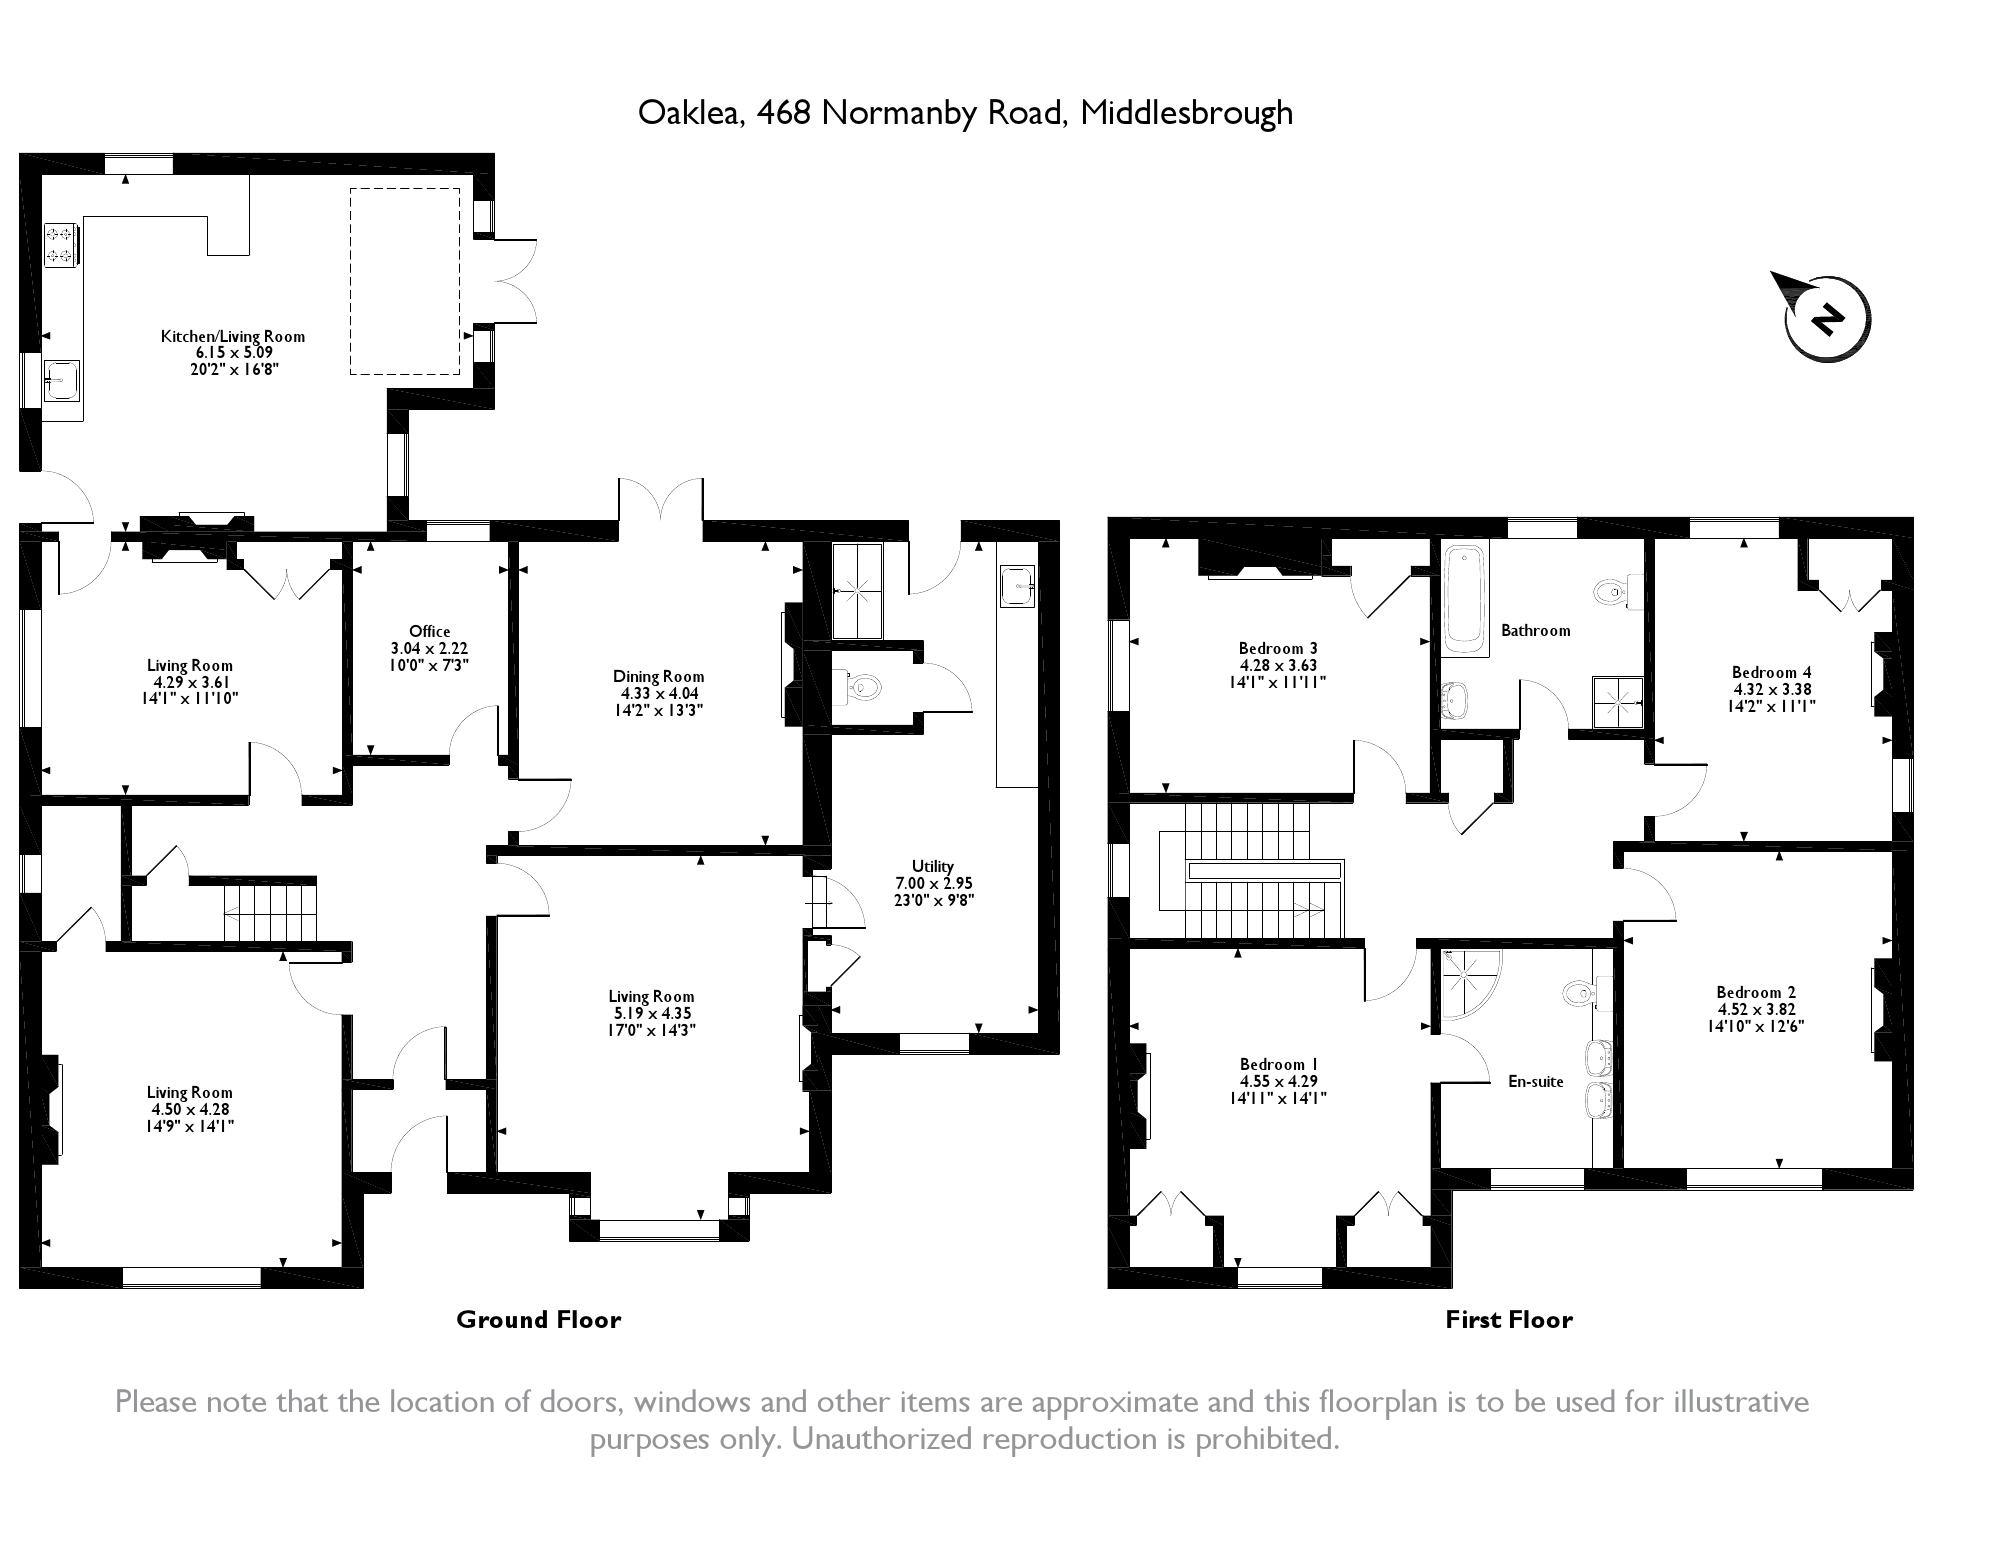 Normanby Road, Middlesbrough, TS6 floor plan